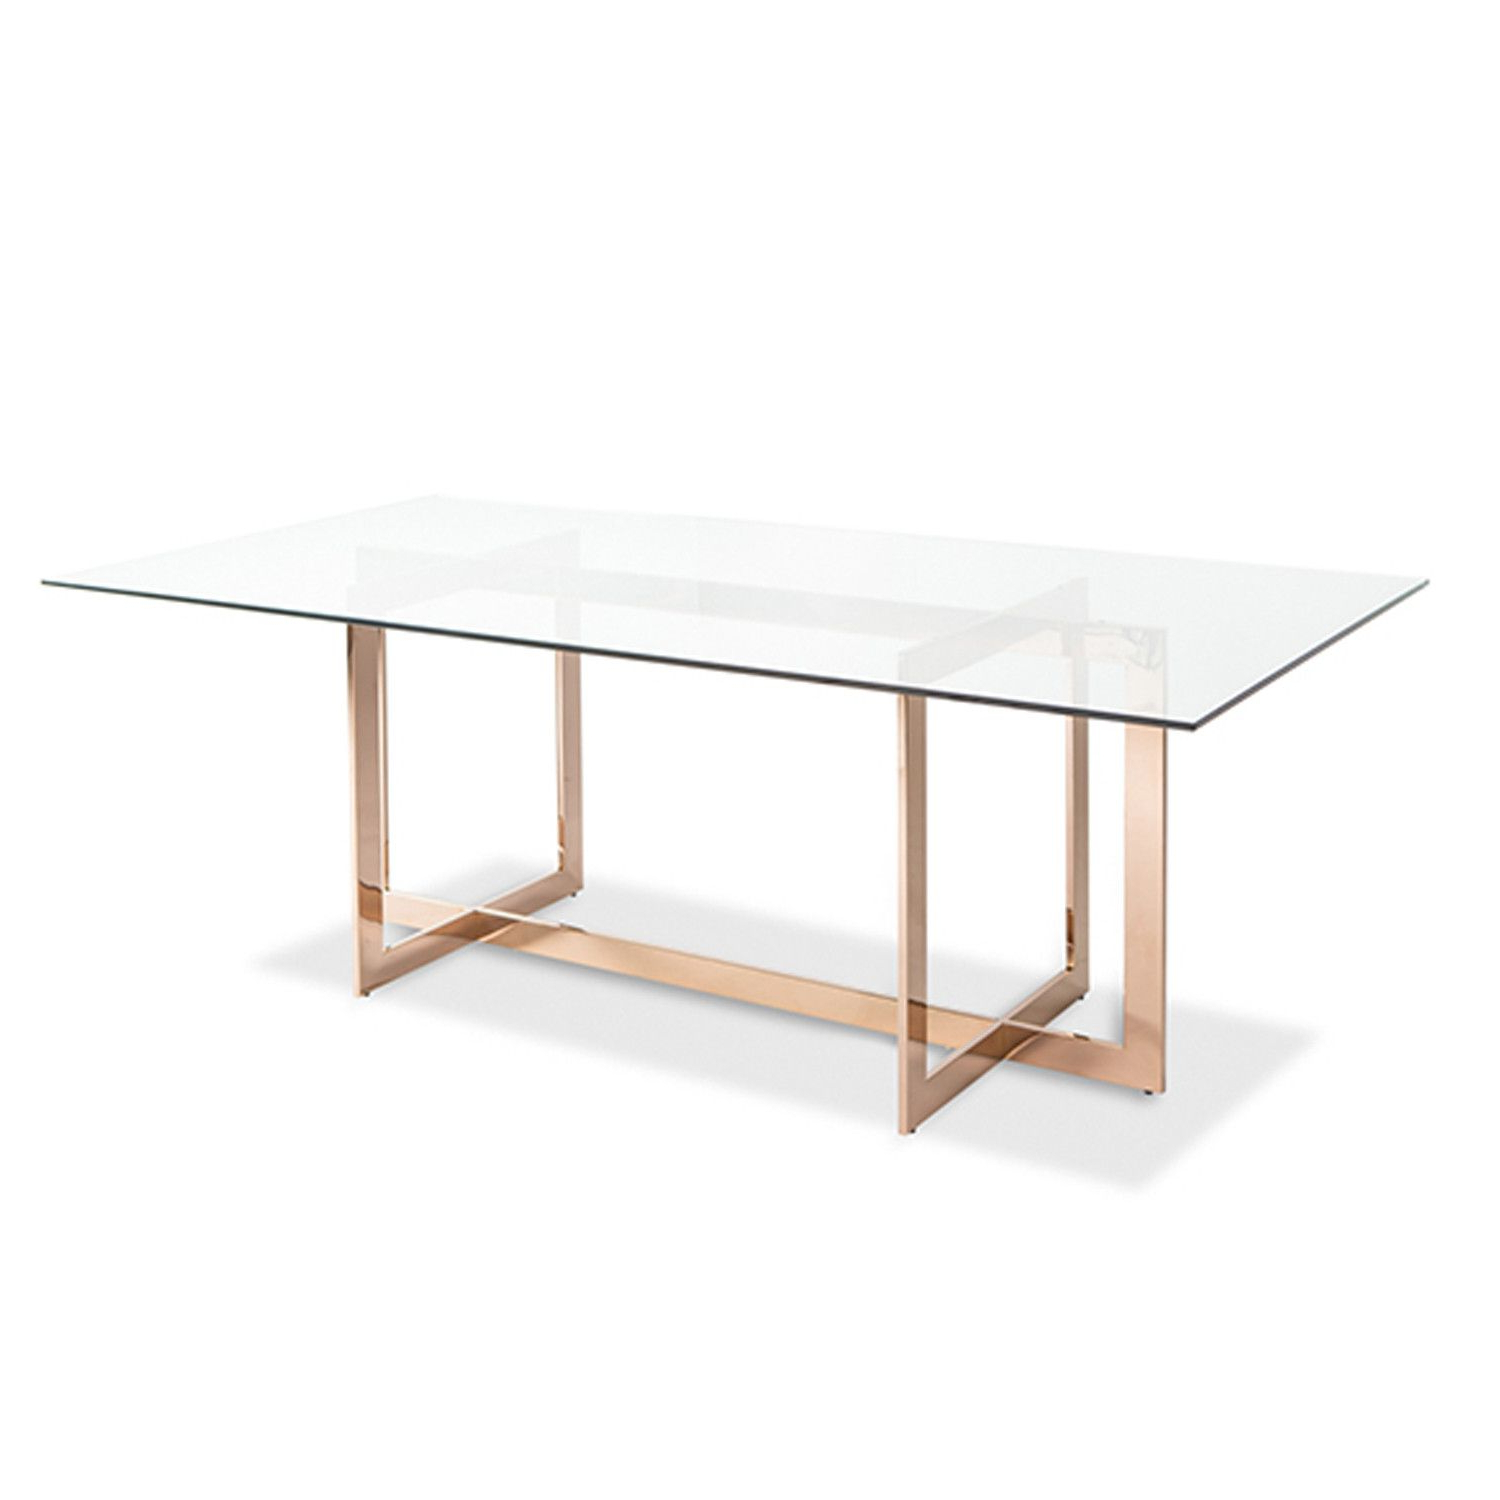 Modern Dining Table Intended For Glass Dining Tables With Metal Legs (Gallery 6 of 30)